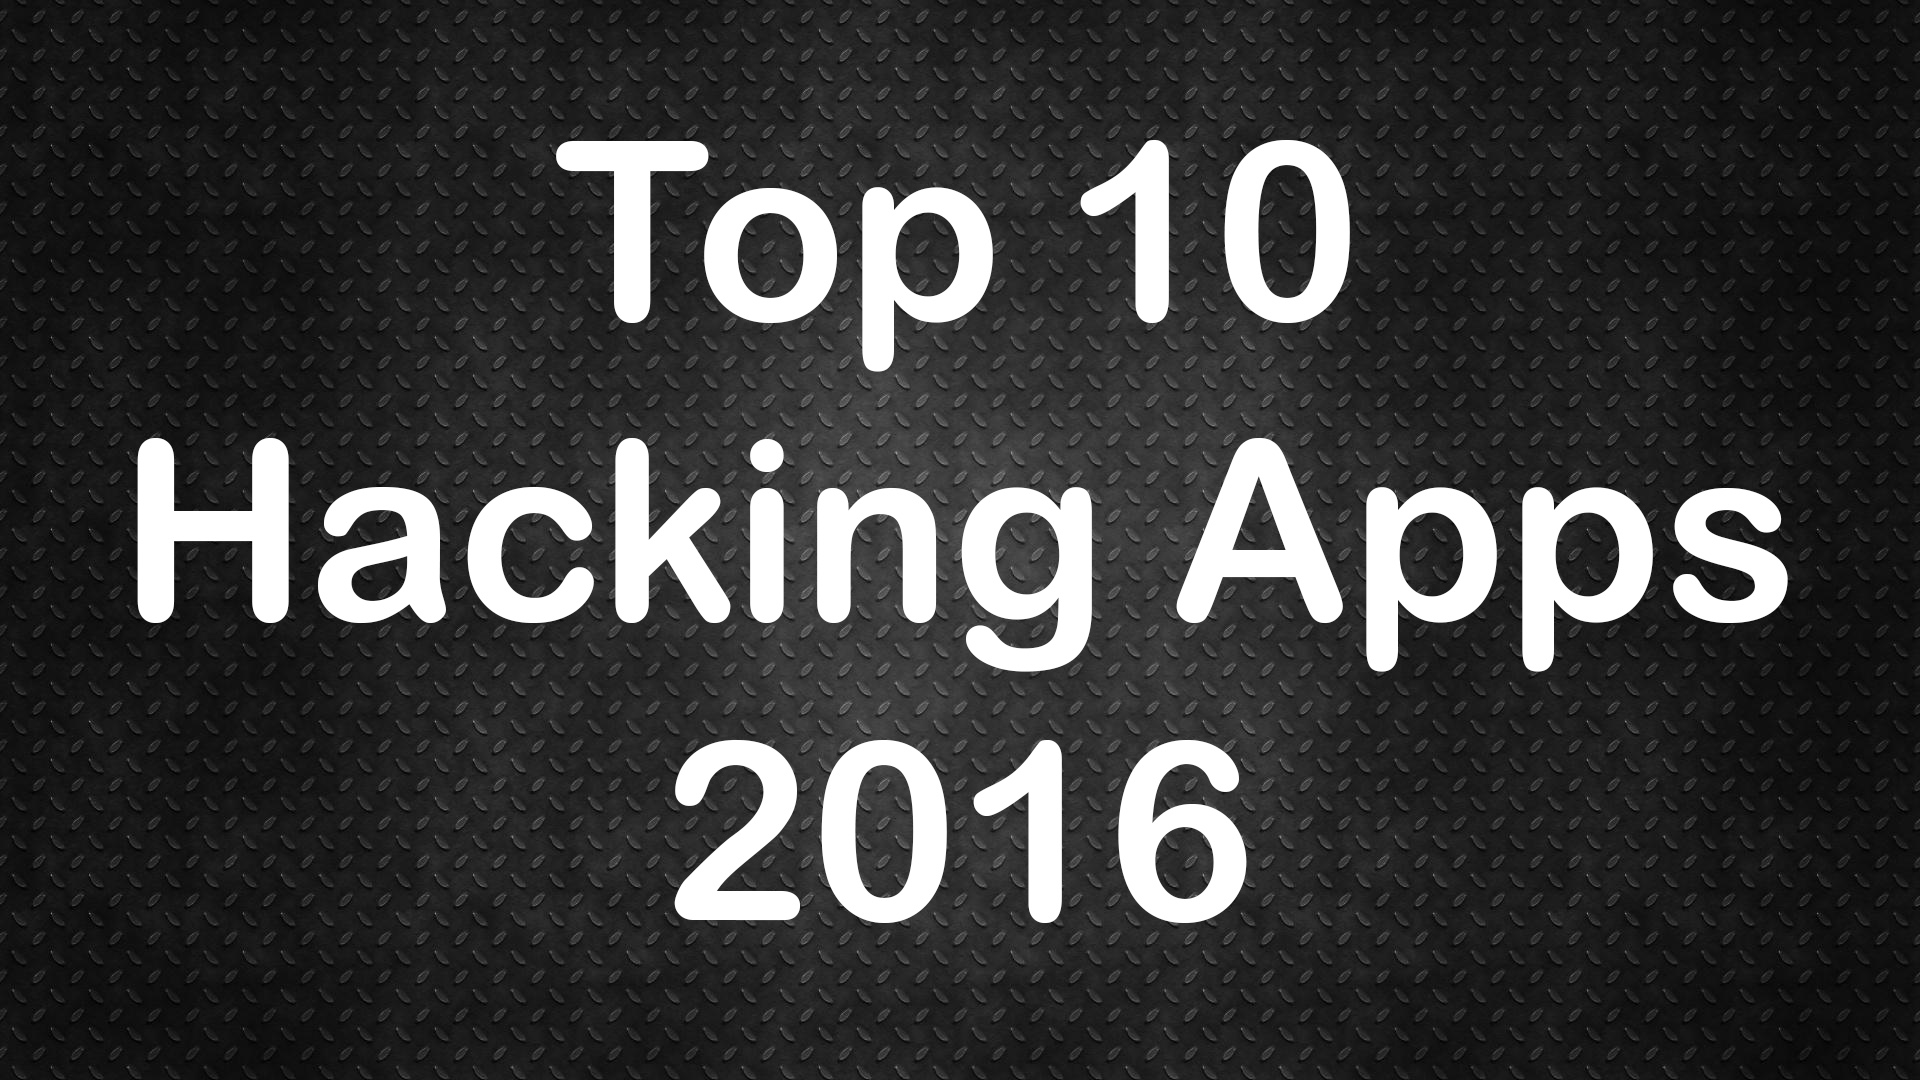 Top 10 Hacking Apps 2016 – Incognisys